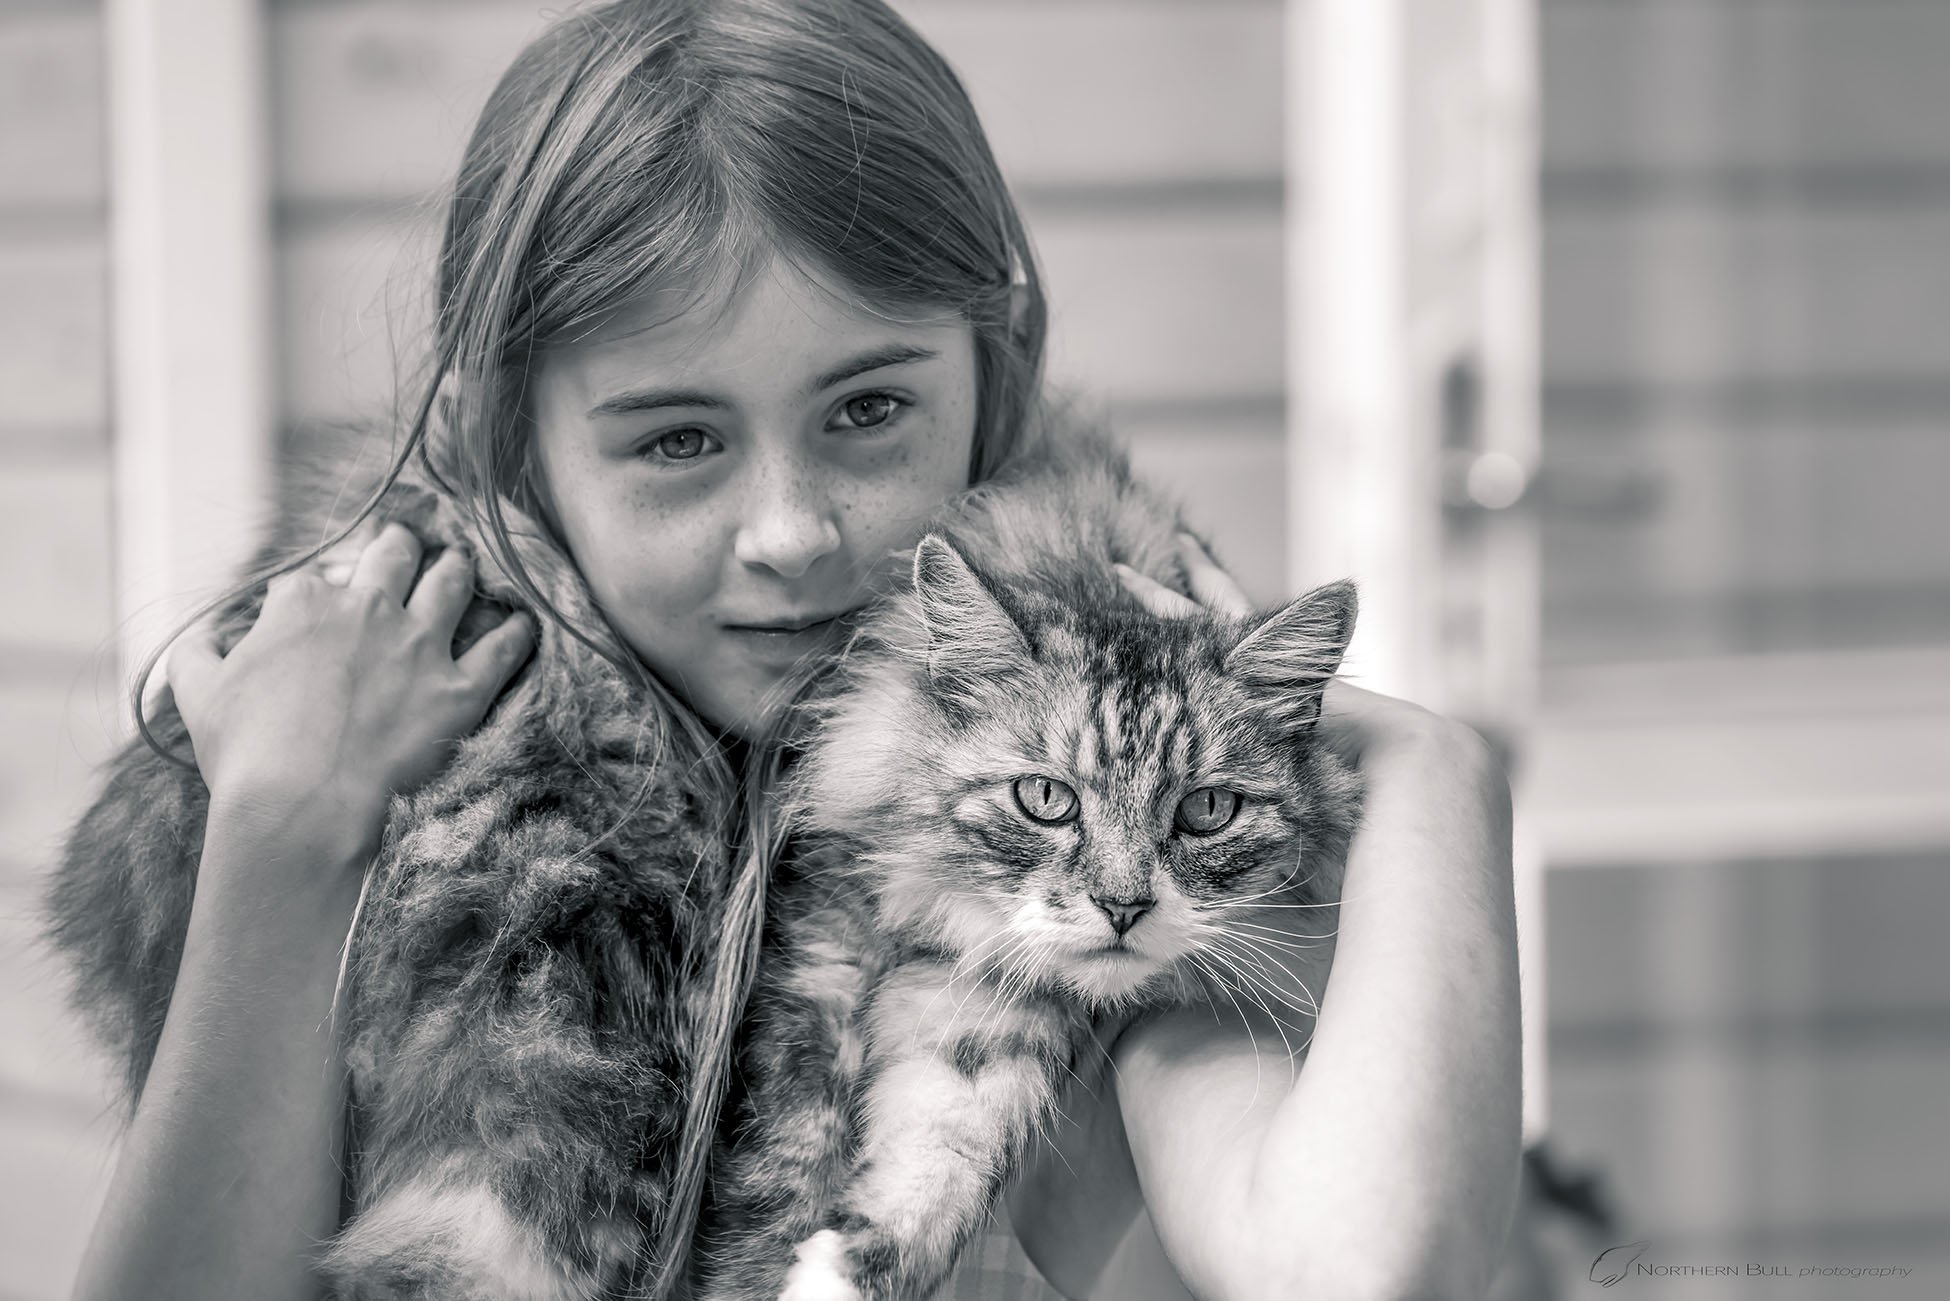 girl_and_her_cat_by_northern_bull.jpg